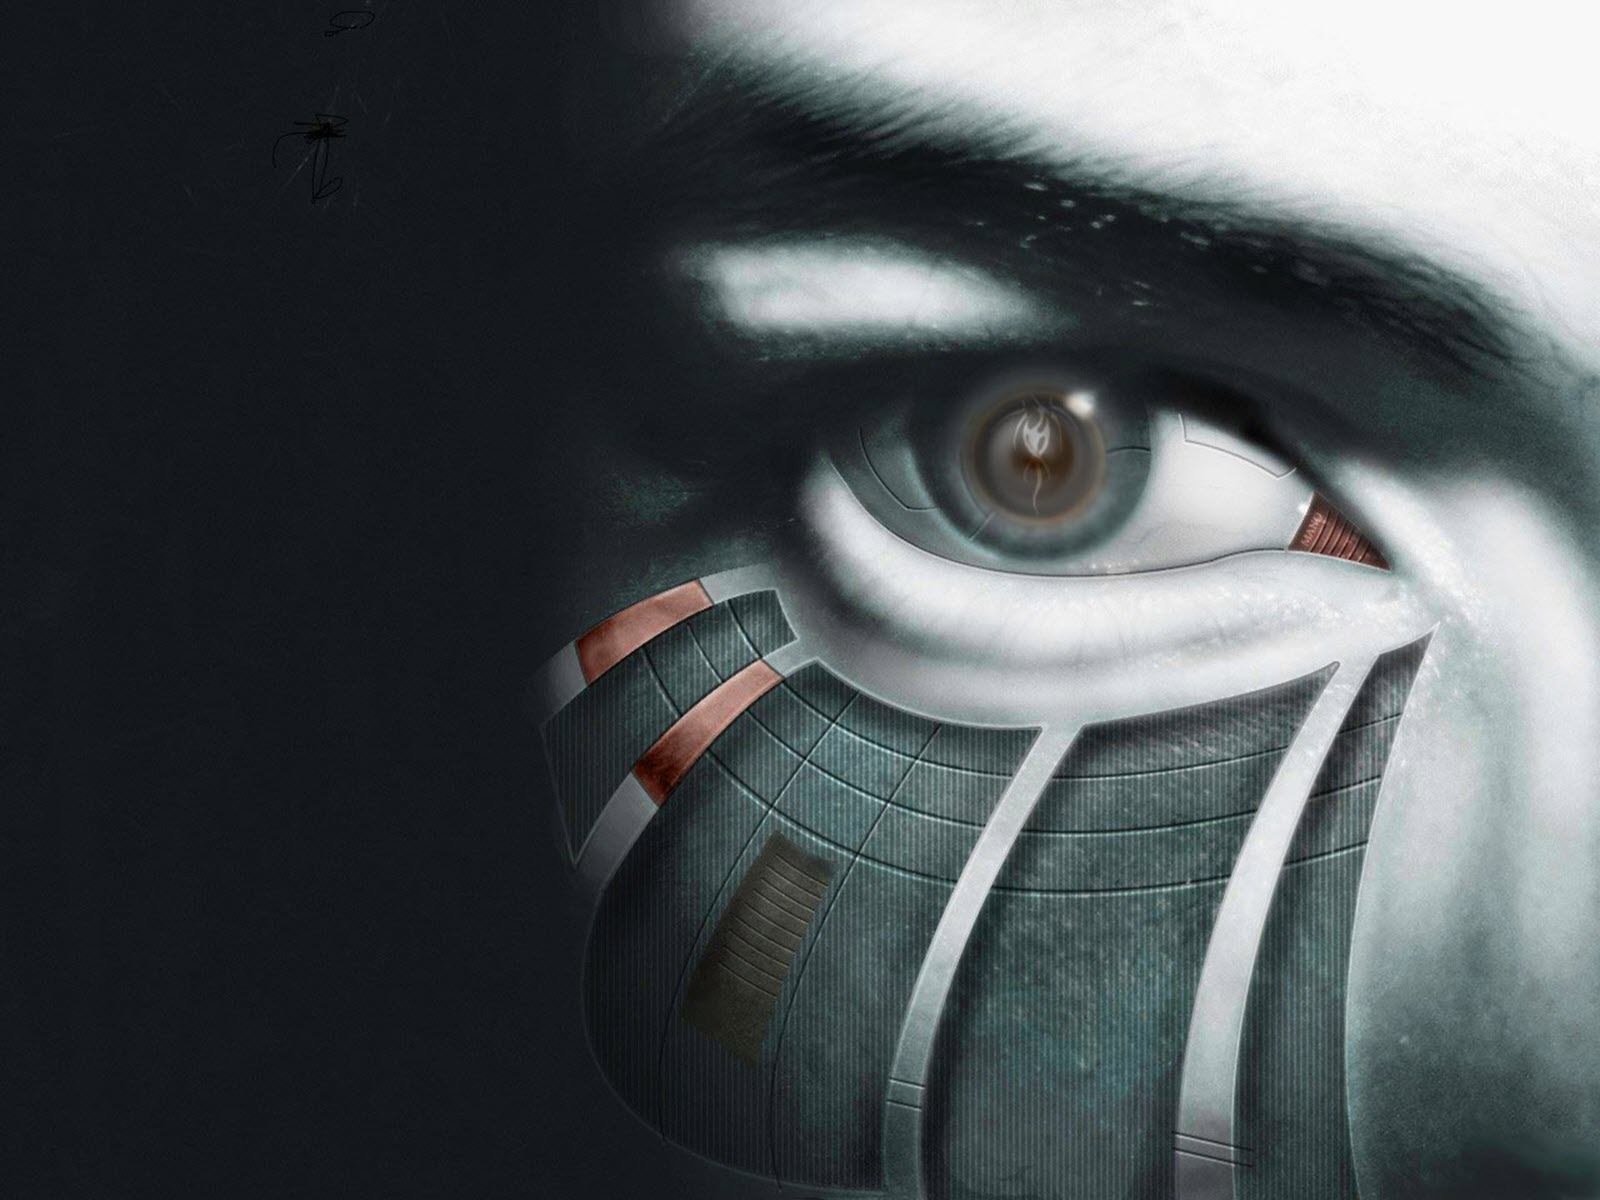 Sci Fi - Cyborg  - Eye Wallpaper